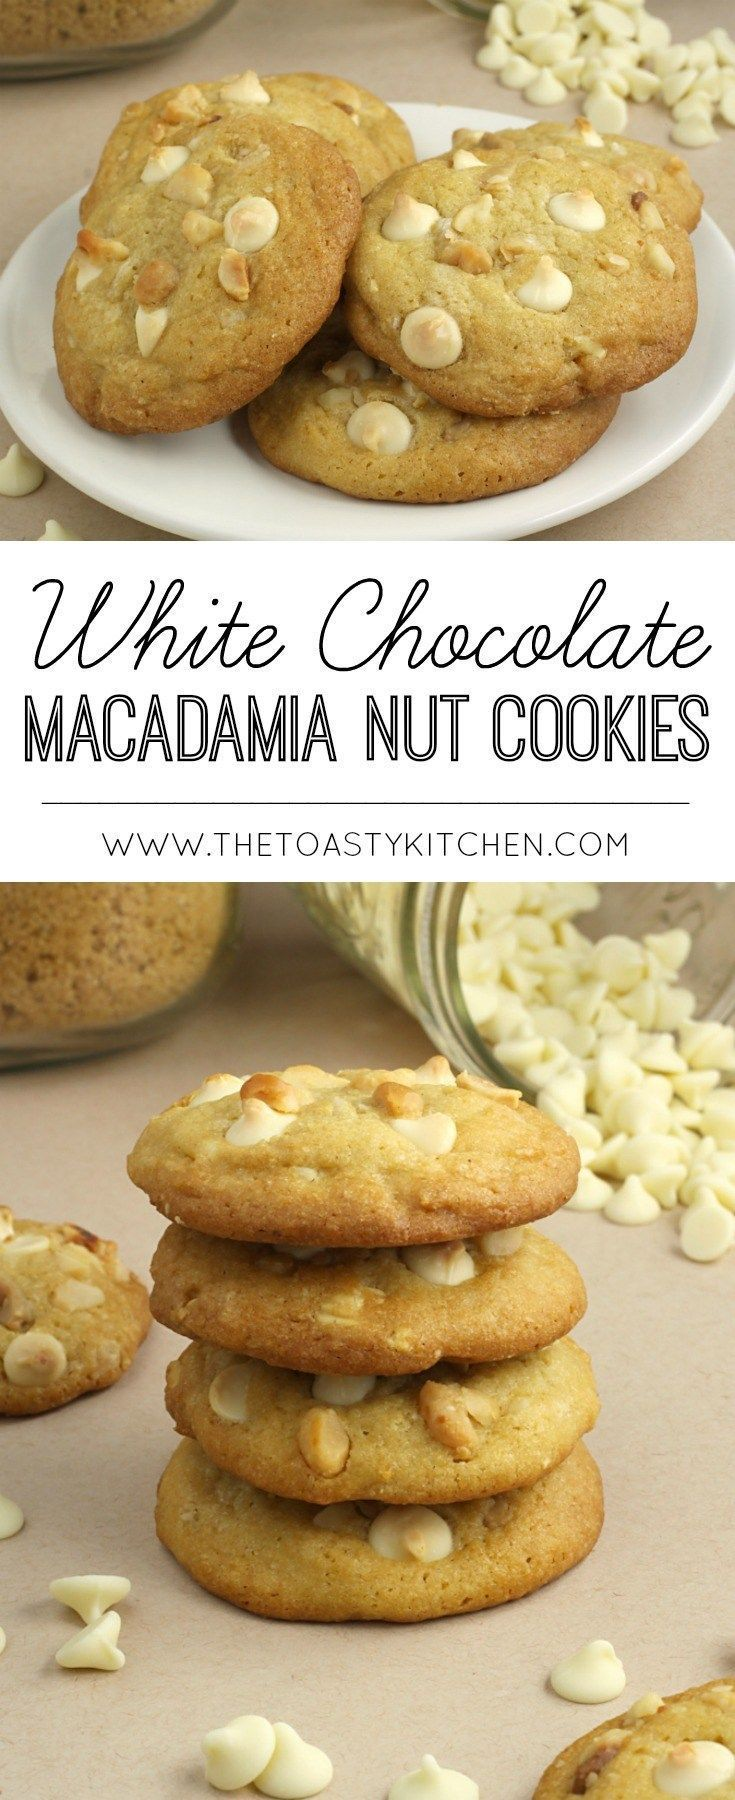 White Chocolate Macadamia Nut Cookies | Posted By: DebbieNet.com